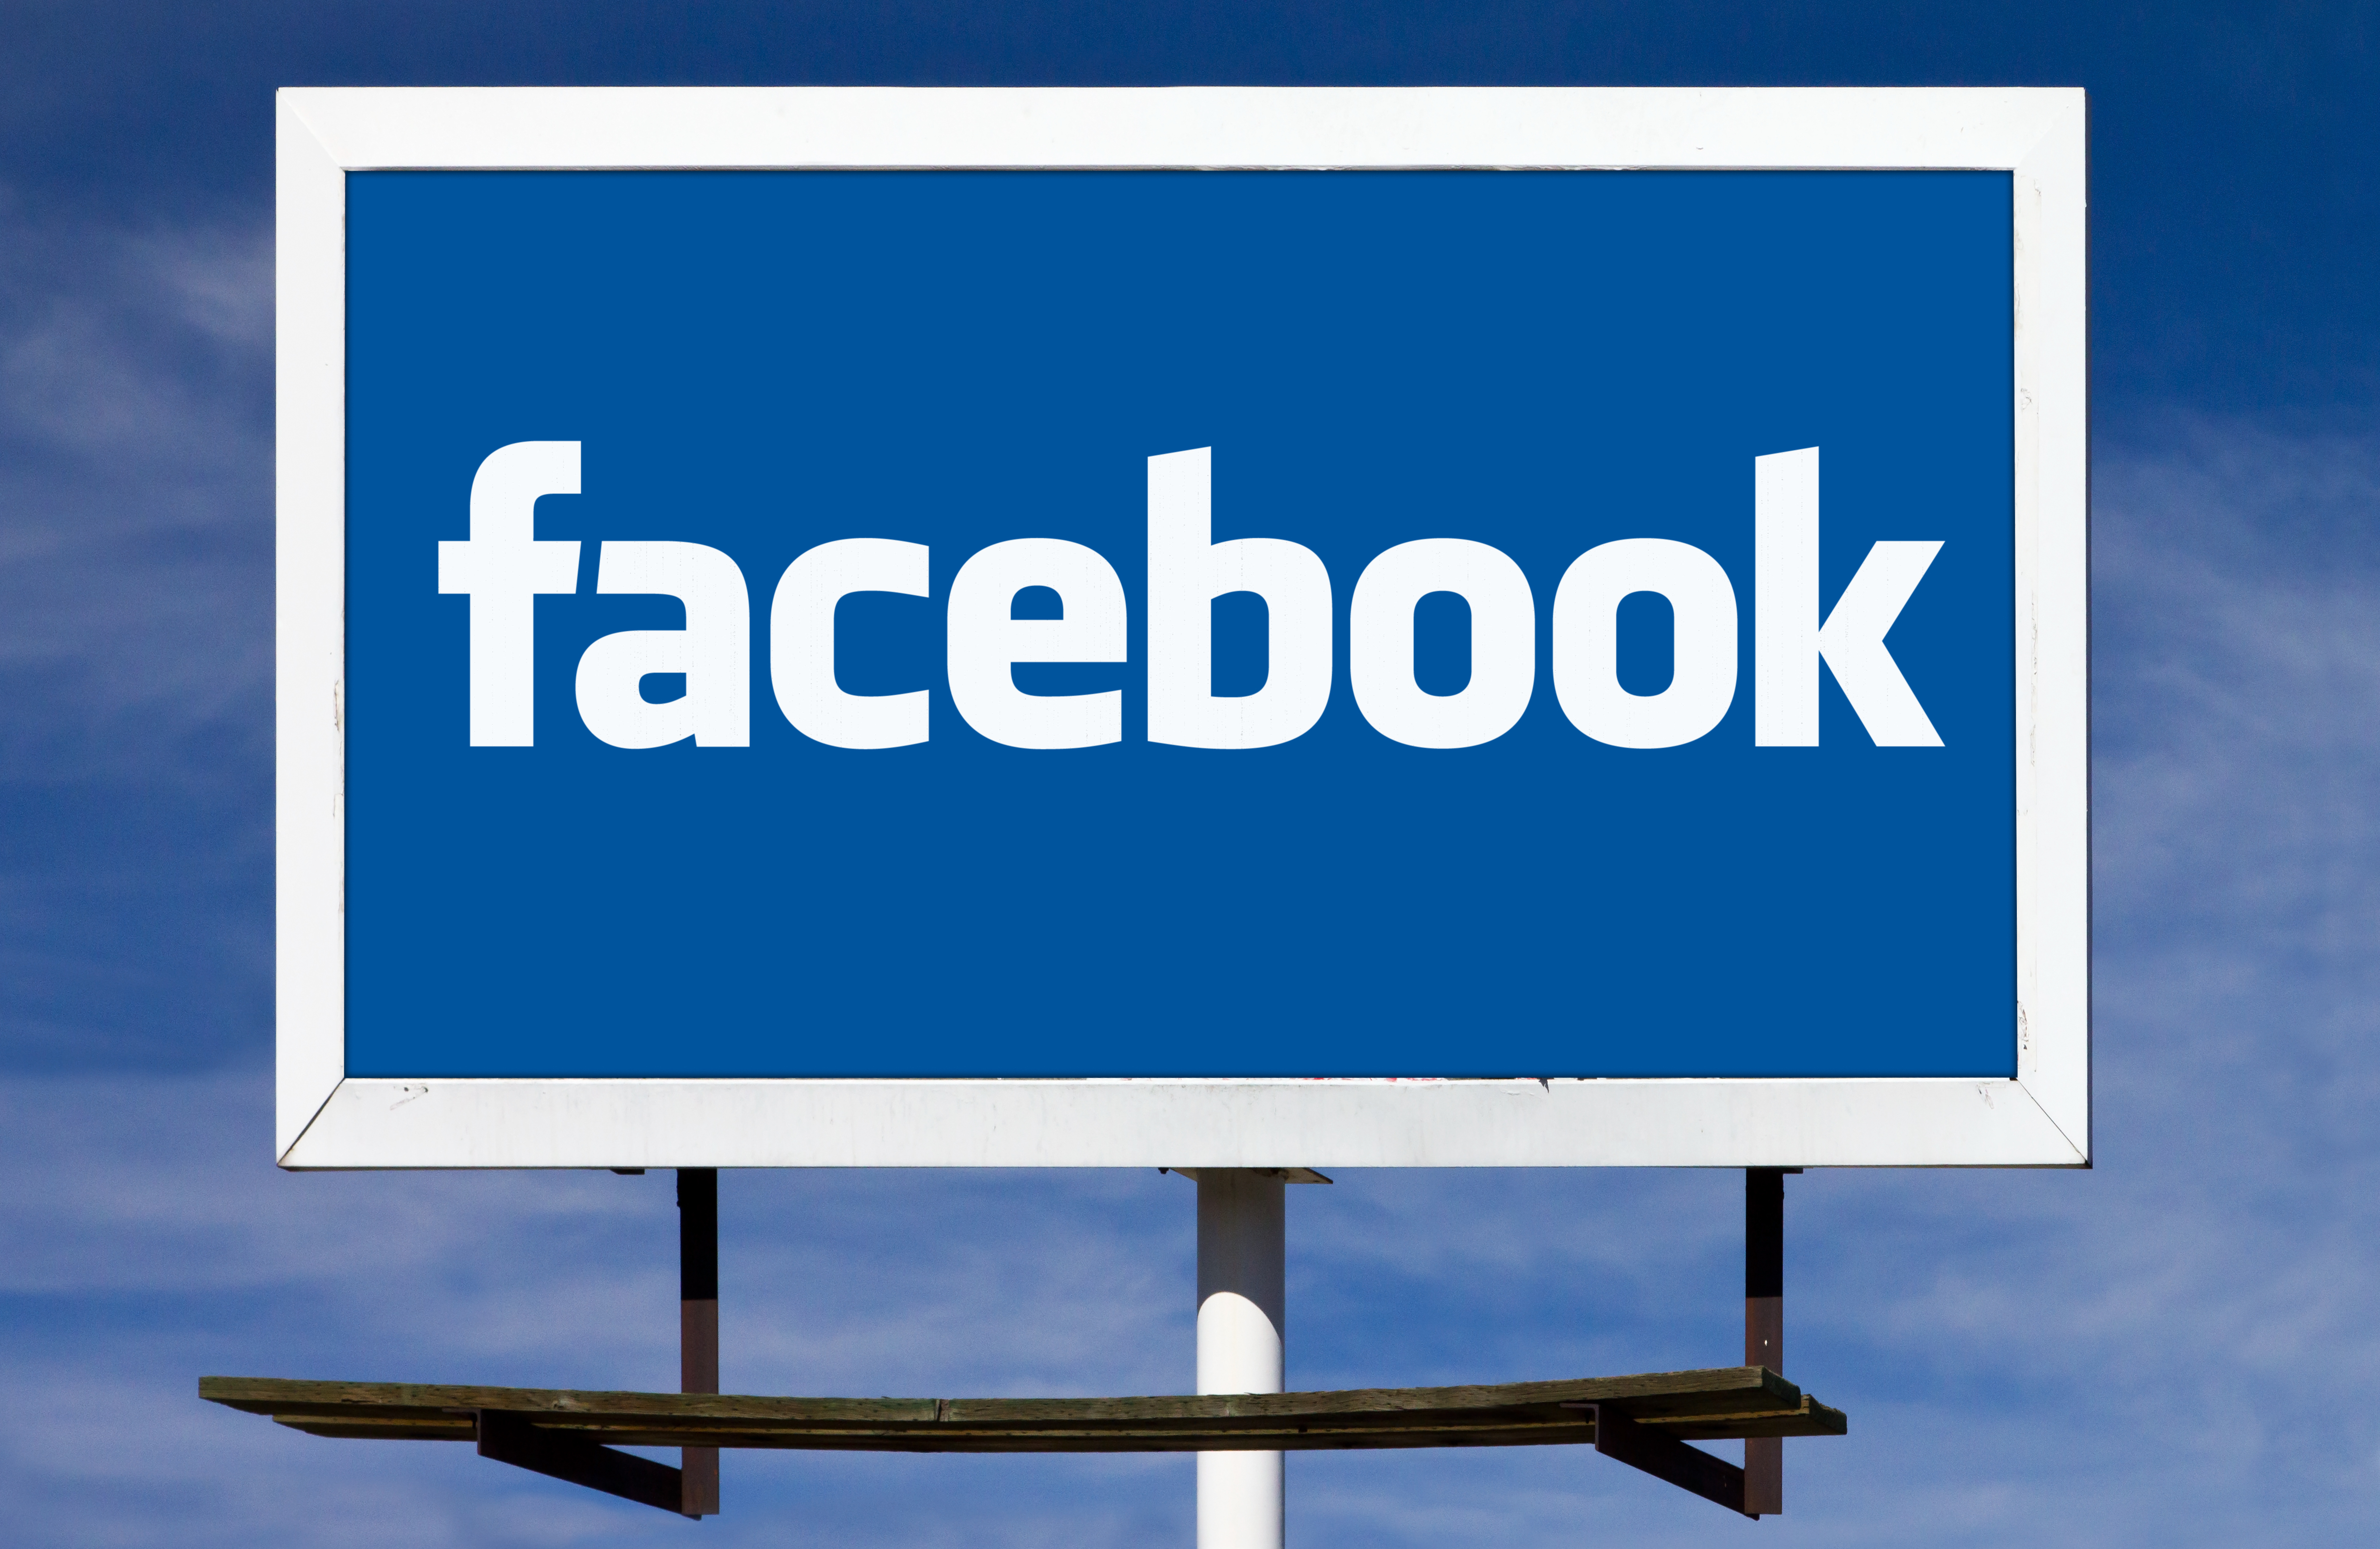 Richard Vanderhurst - Confused About Marketing On Facebook Try This Advice Today!